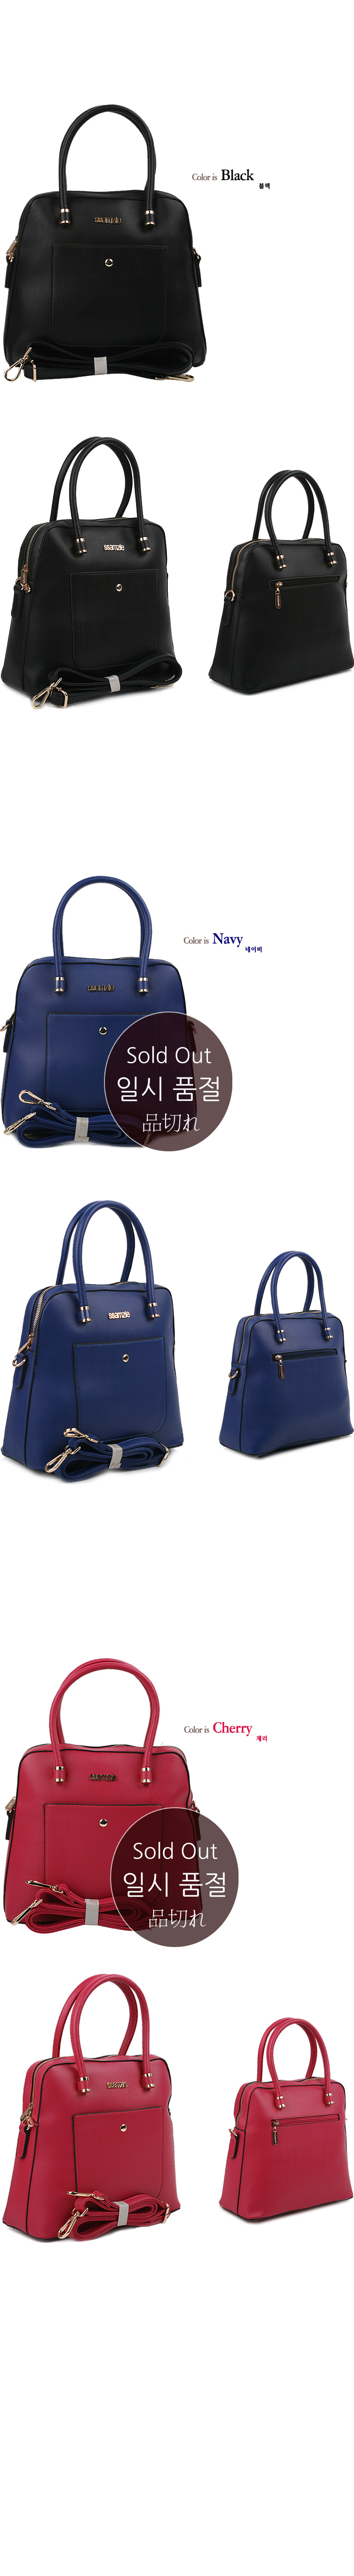 ssamzie handbag no.SSAMZIE-610view-2